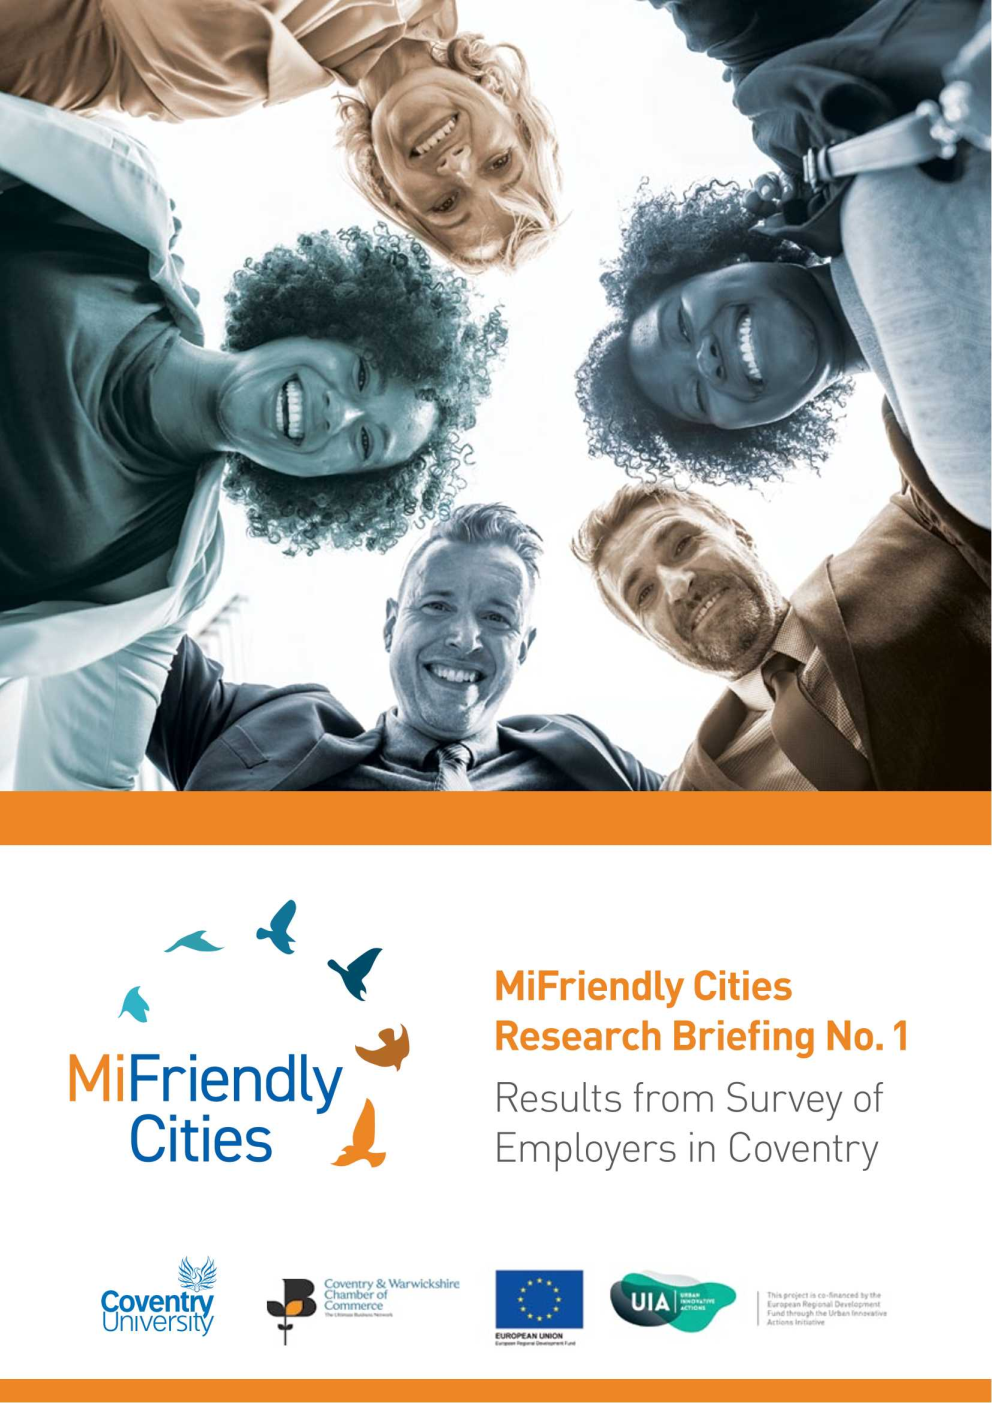 https://mifriendlycities.co.uk/wp-content/uploads/2019/03/Employers-Survey-Cover-Image.png